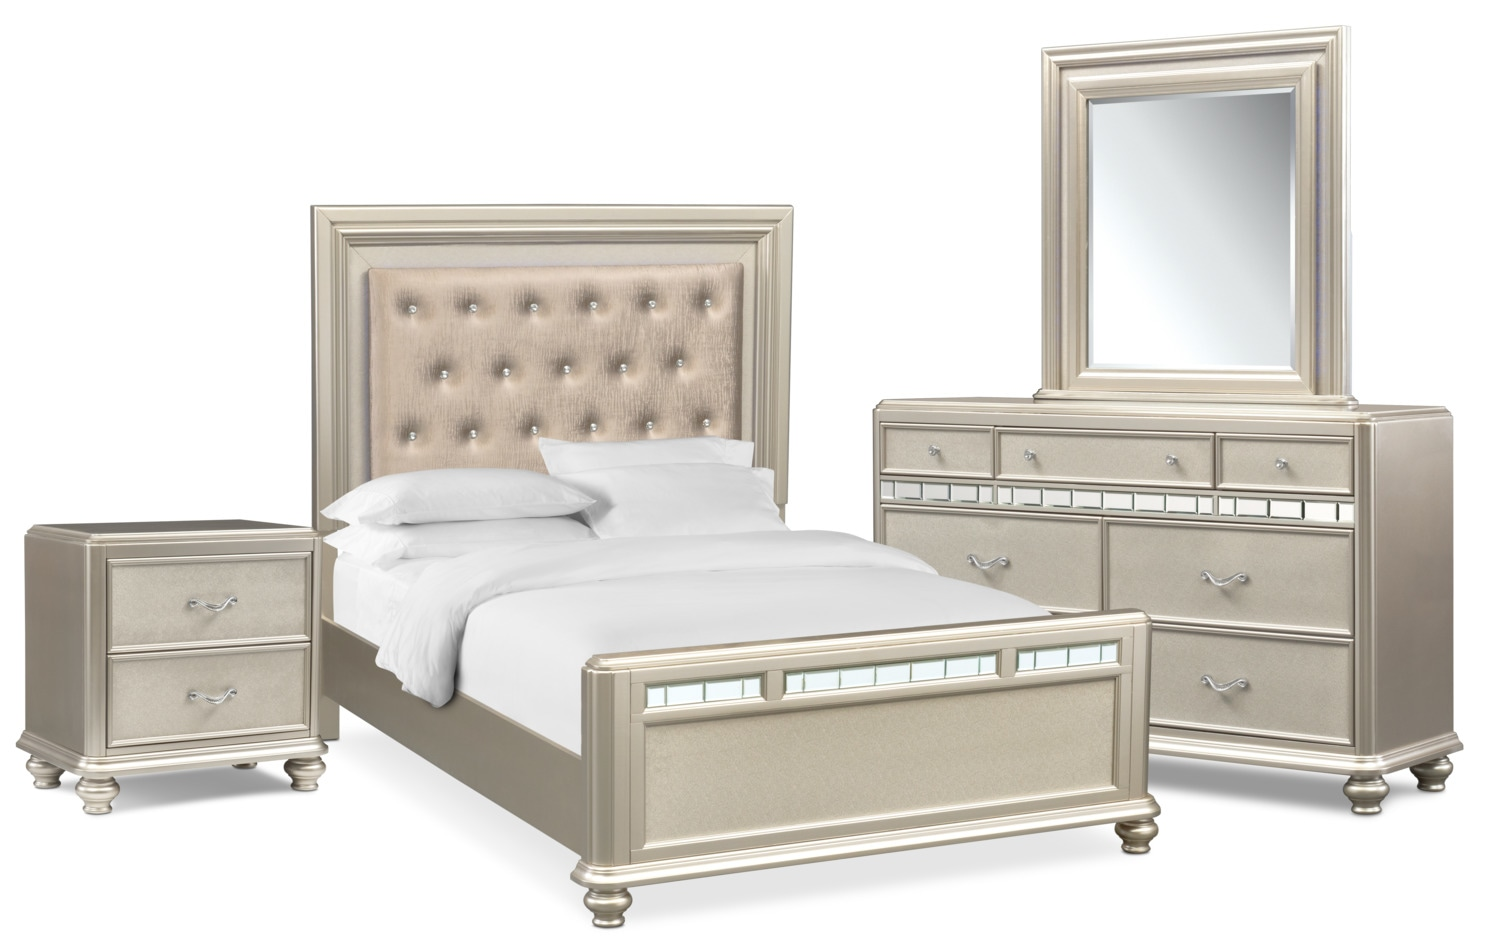 Sabrina 6 Piece Queen Bedroom Set With Nightstand Dresser And Mirror Bedroom Set Bedroom Sets Queen King Bedroom Sets